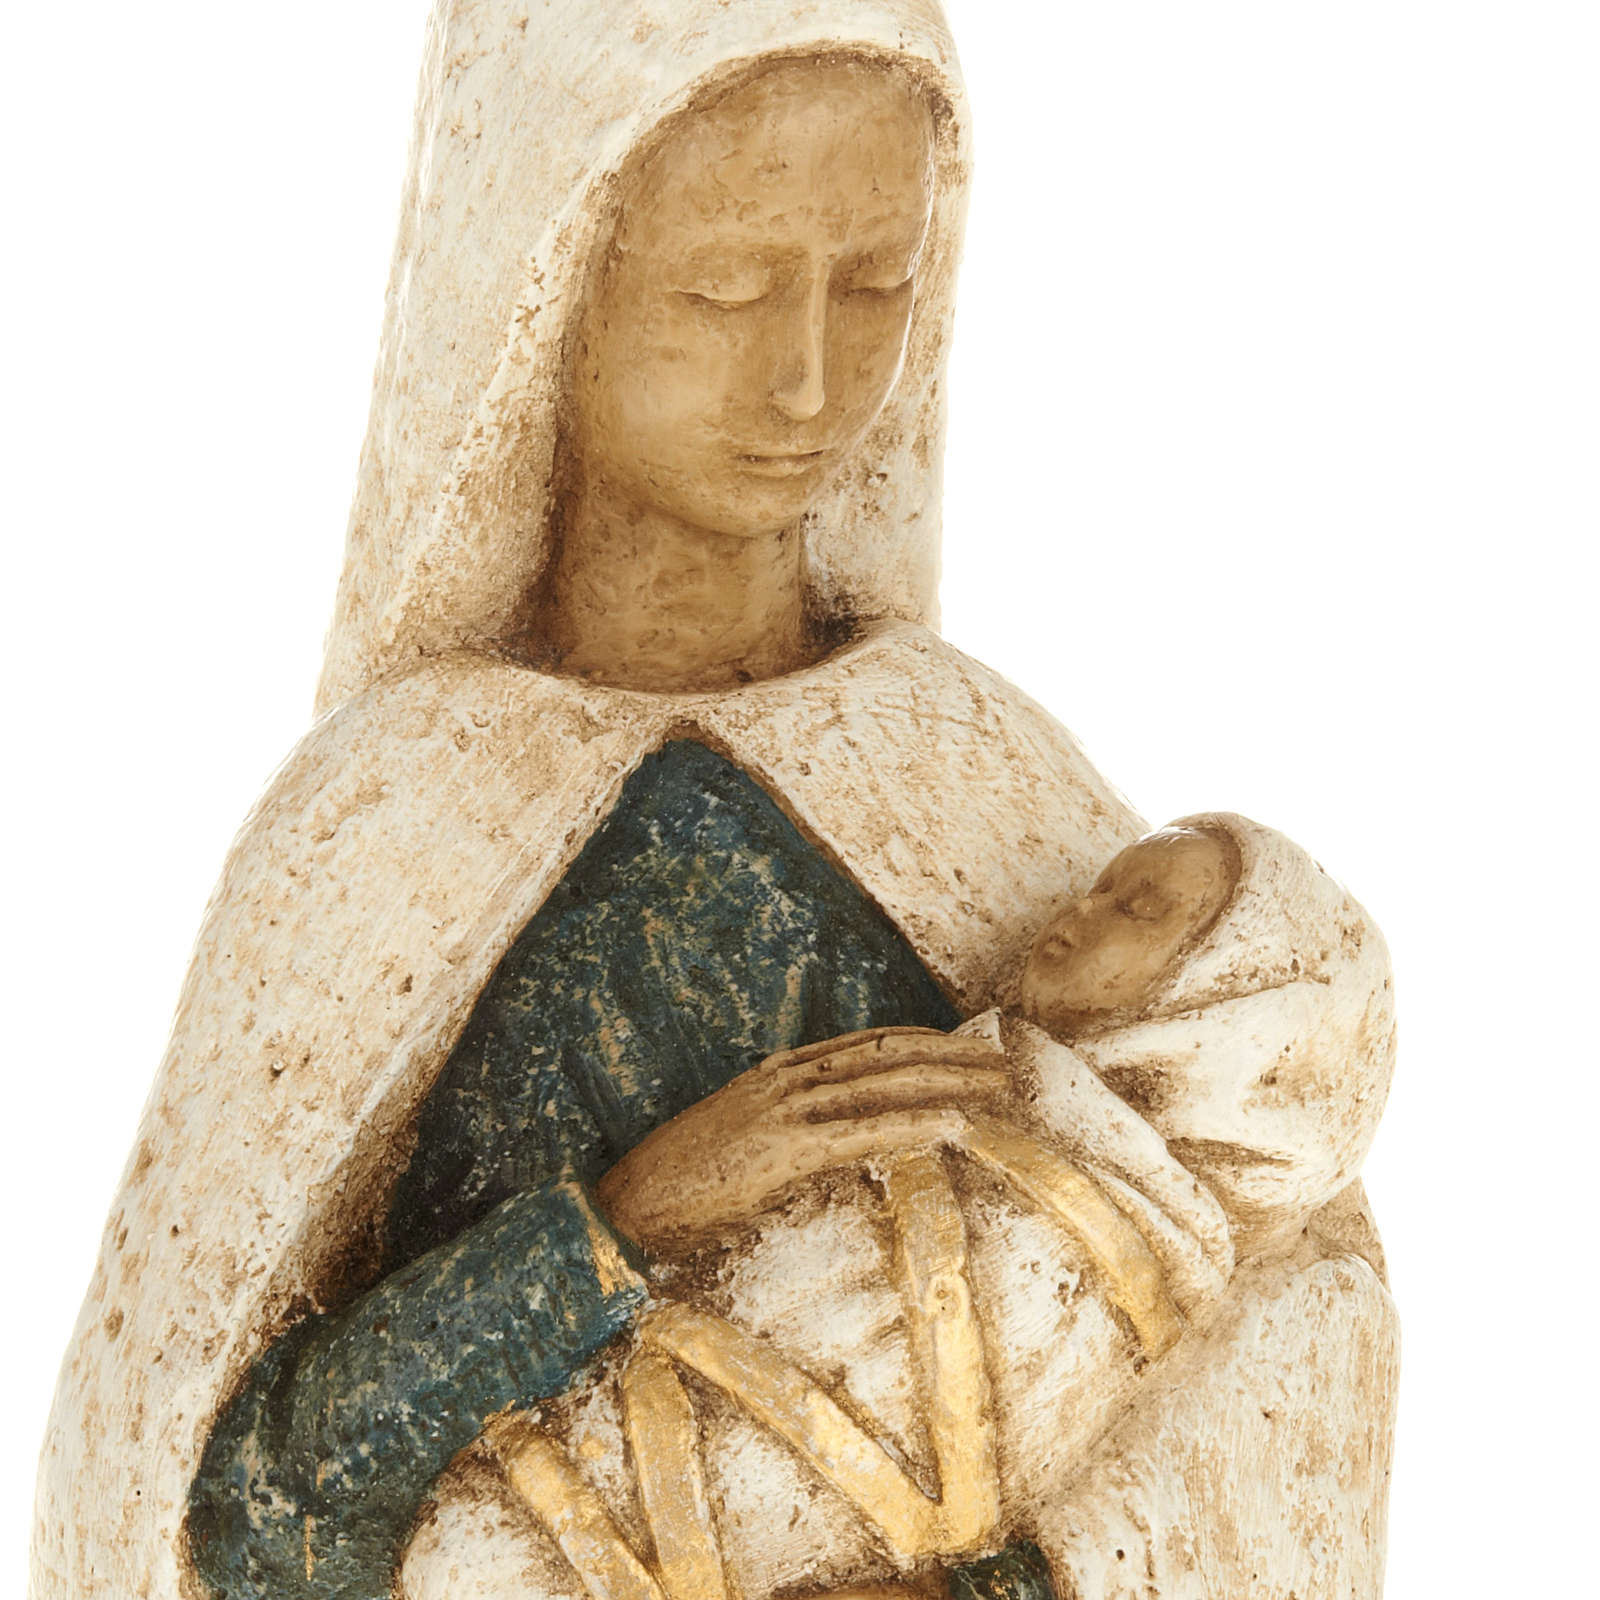 Virgin Mary with baby Jesus stone statue, Bethléem monast 4